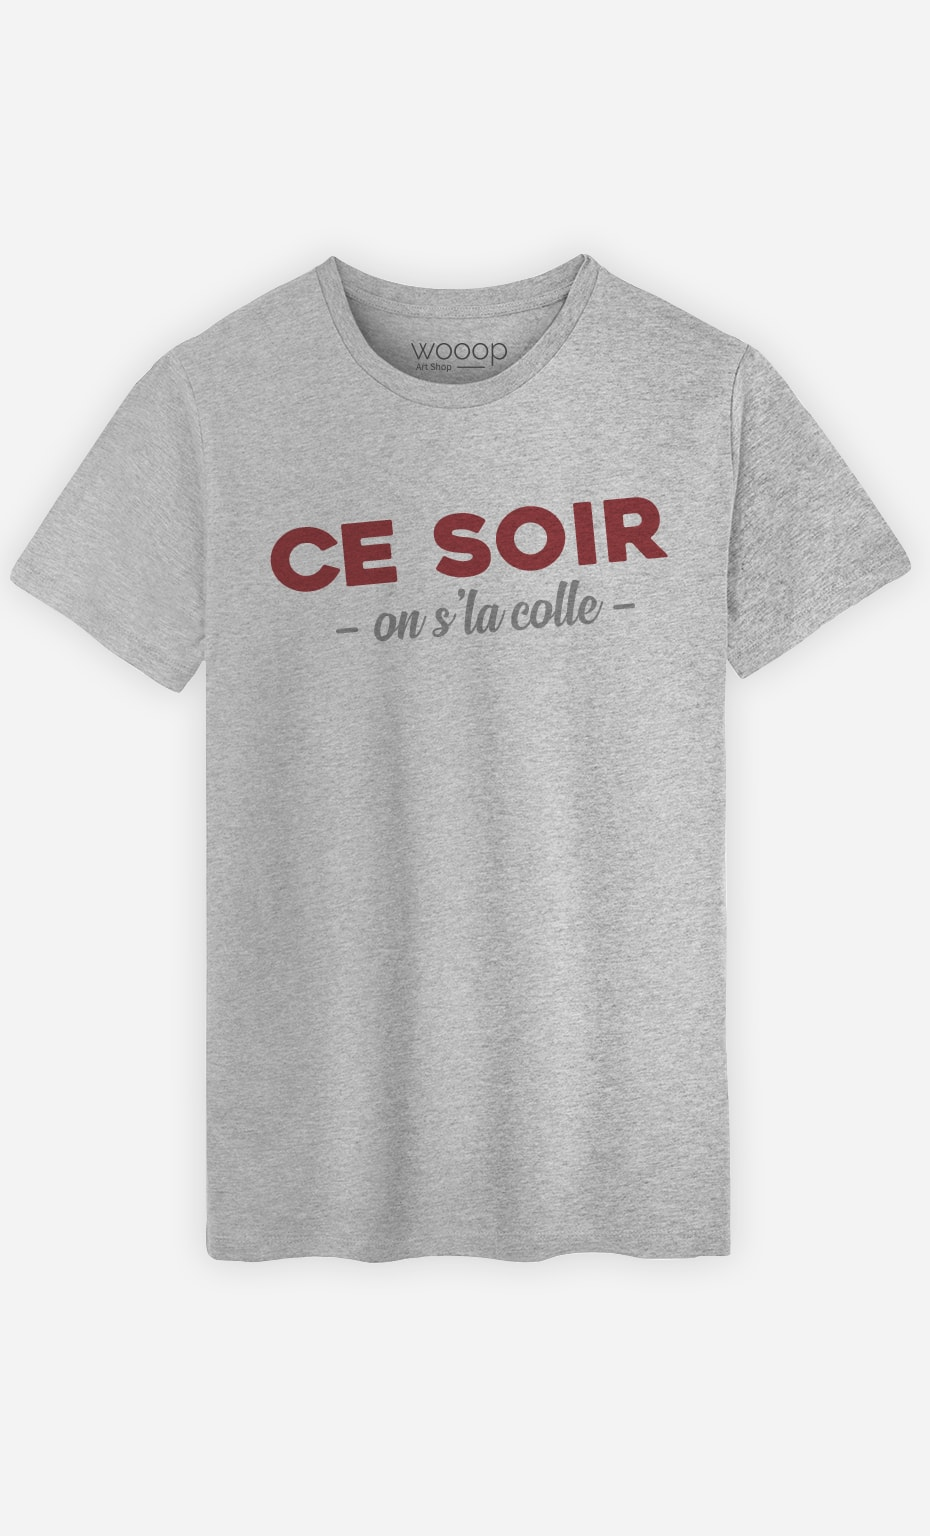 T-Shirt Gris Homme Ce soir on s'la colle